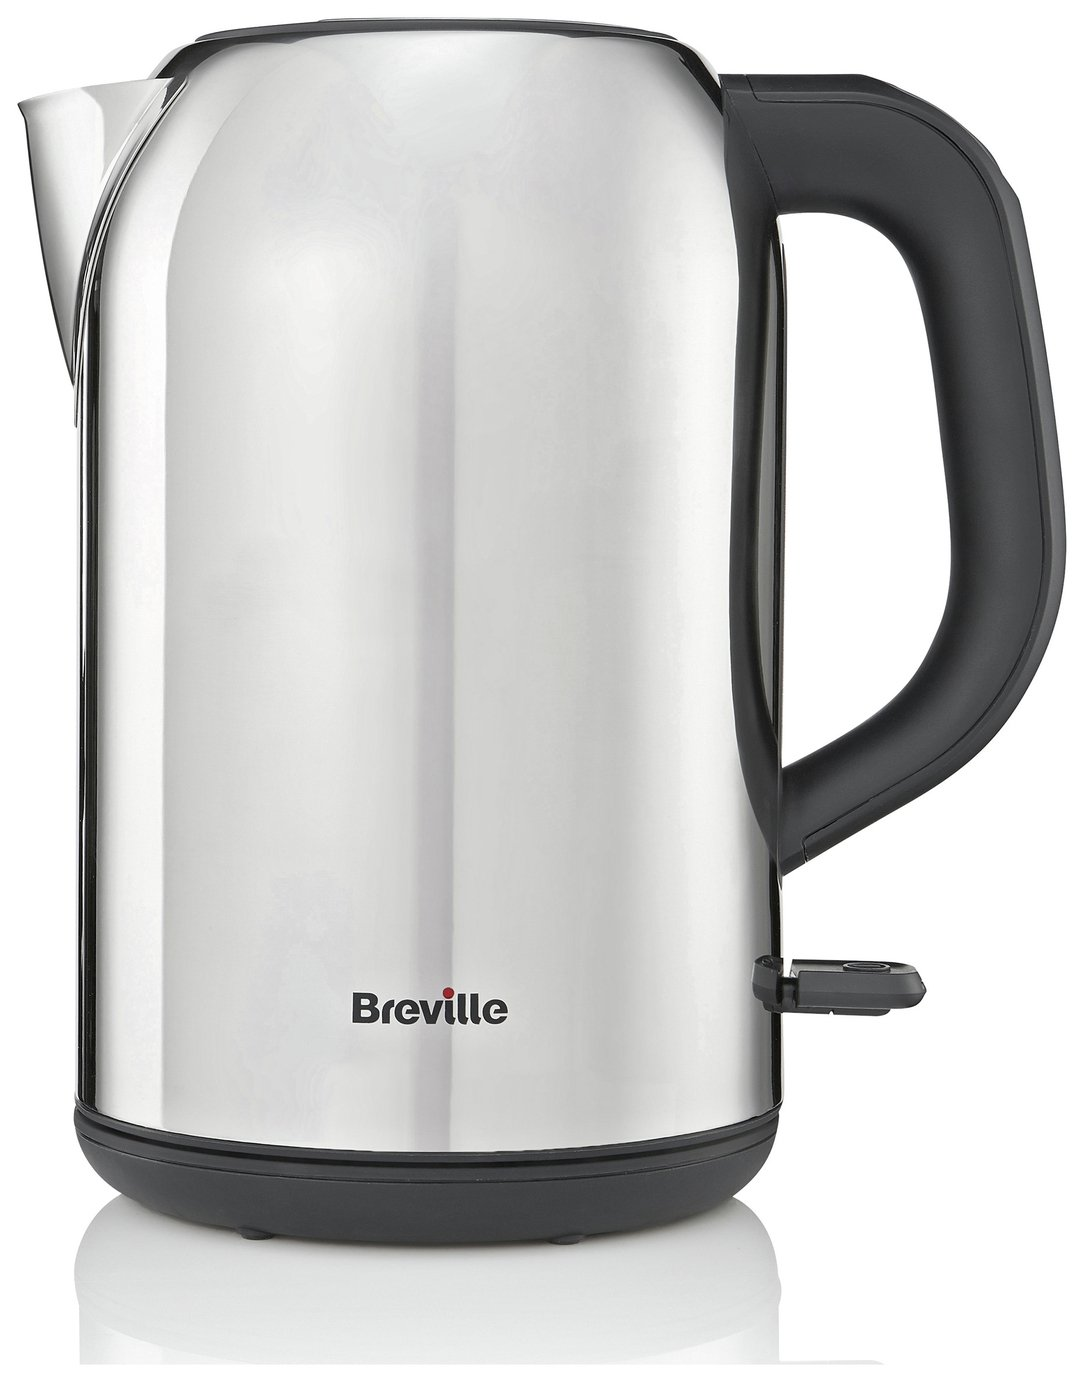 IKJ796 Jug Kettle - Polished Stainless Steel-Breville Best Price and Cheapest